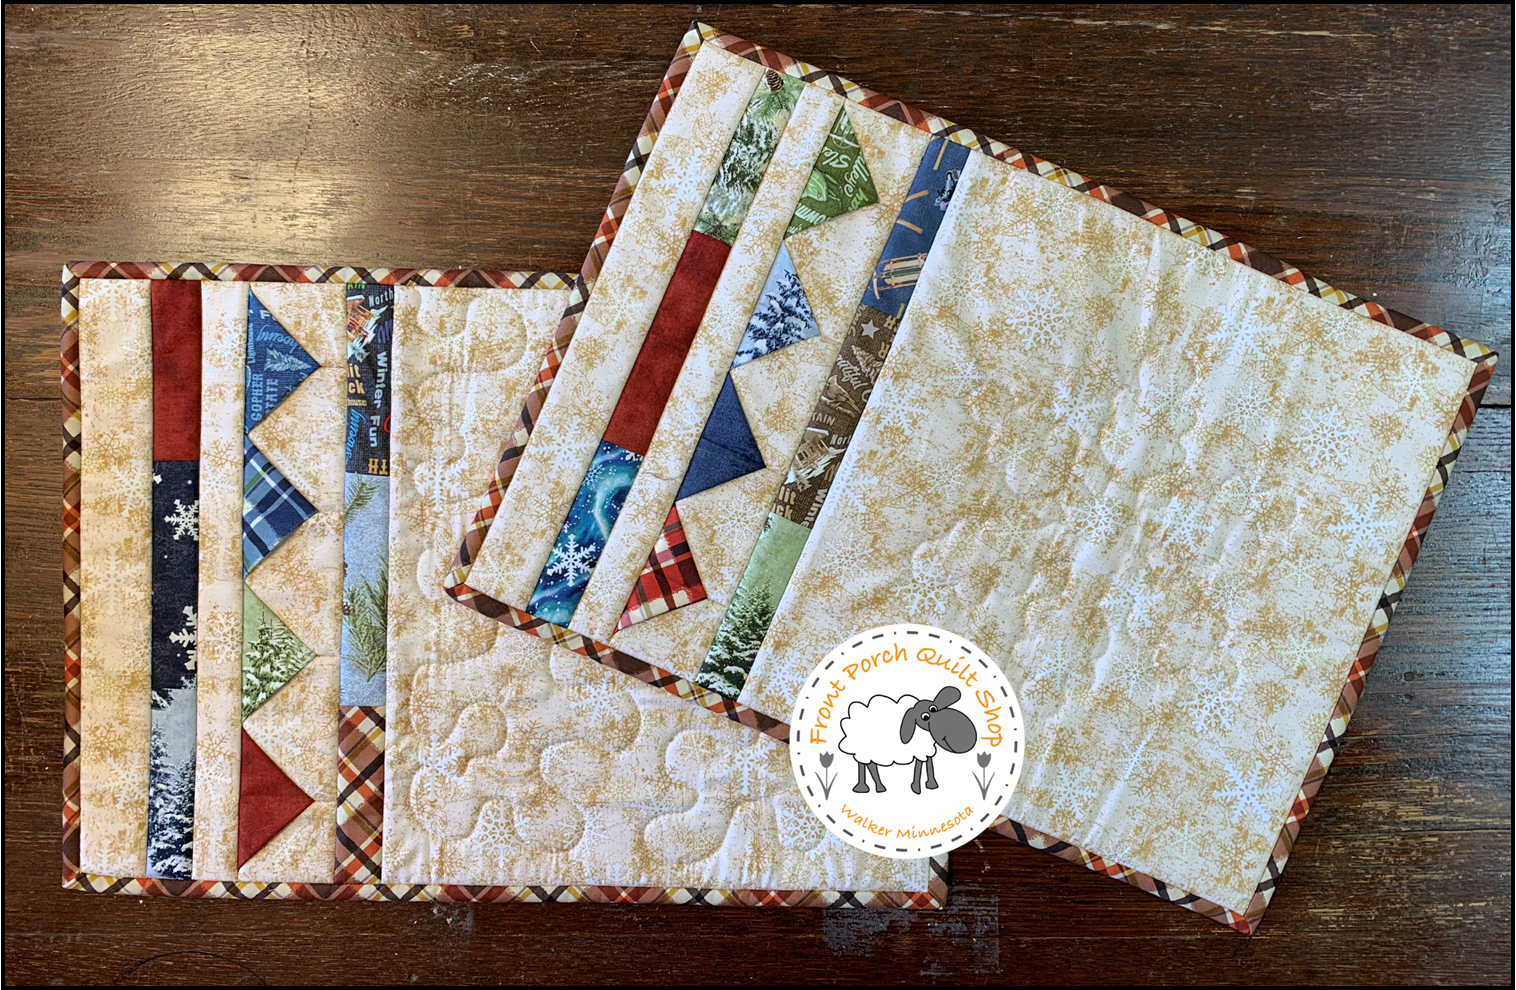 Friday Fiesta Placemats Quilt as You Go Quilt Minnesota 2021 Kit